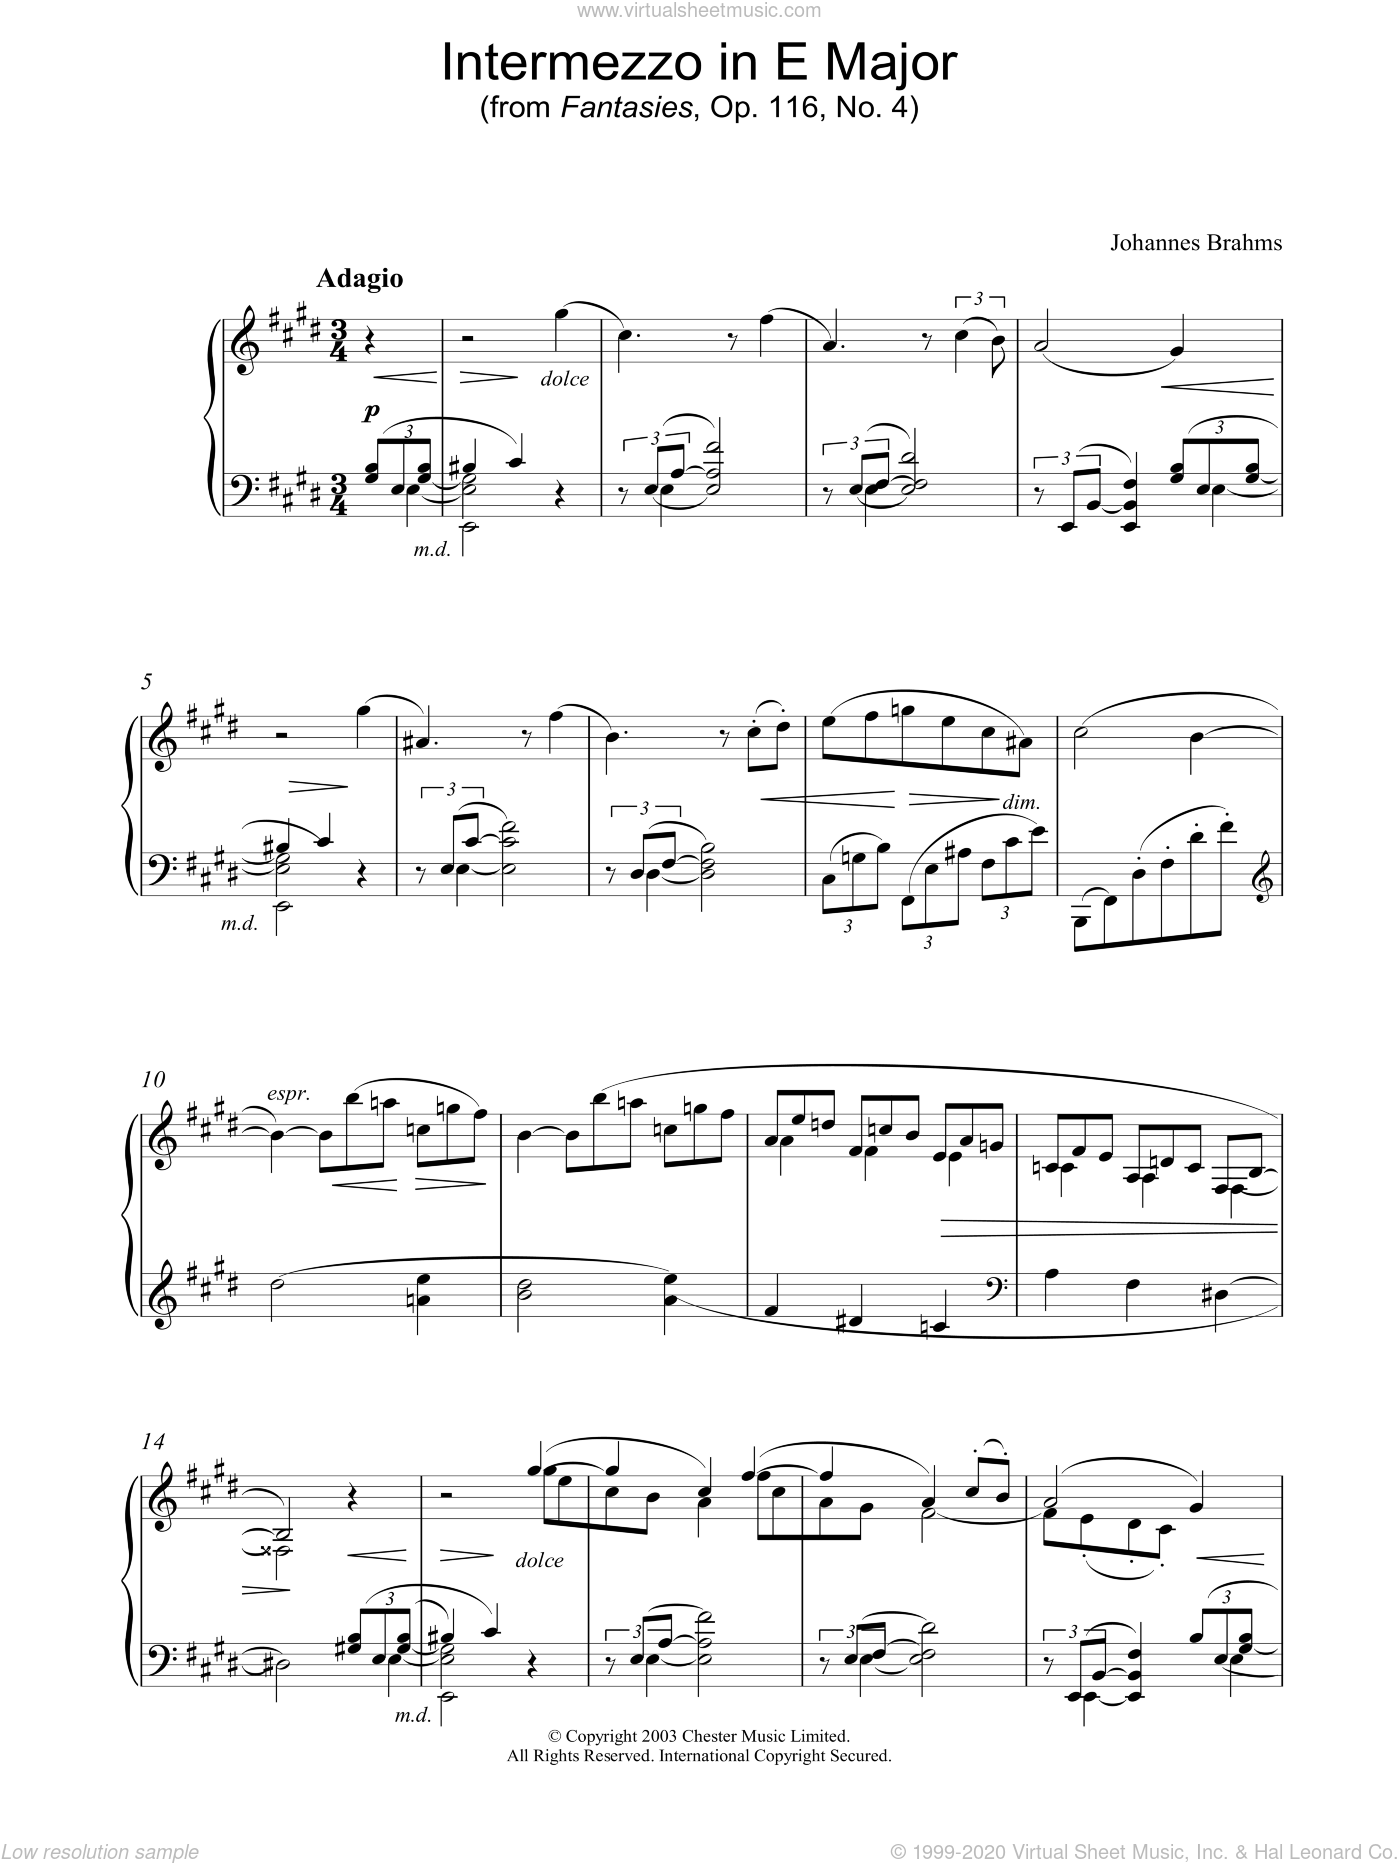 Intermezzo in E Major (from Fantasies, Op. 116, No. 4) sheet music for piano solo by Johannes Brahms, classical score, intermediate skill level